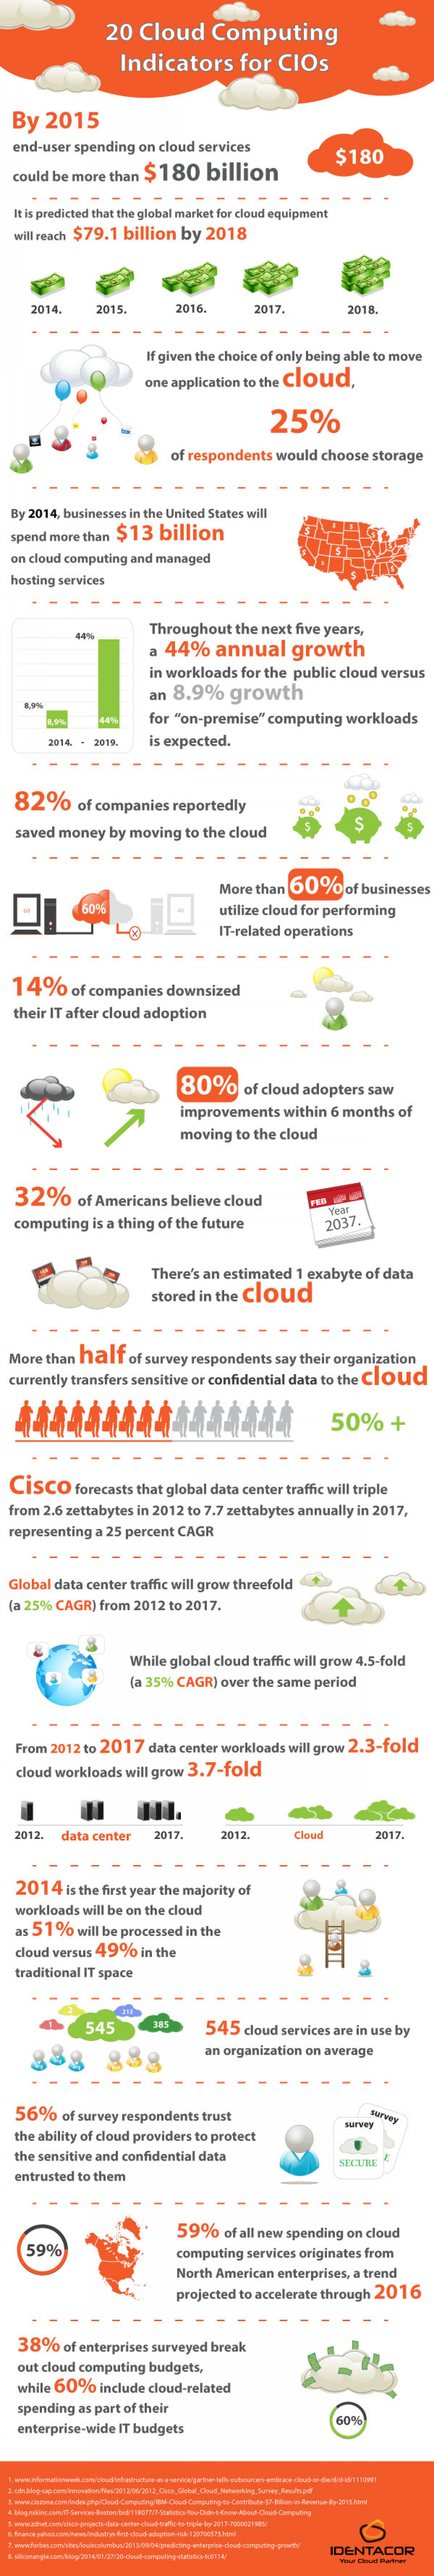 20 Cloud Computing Indicators for CIOs Infographic